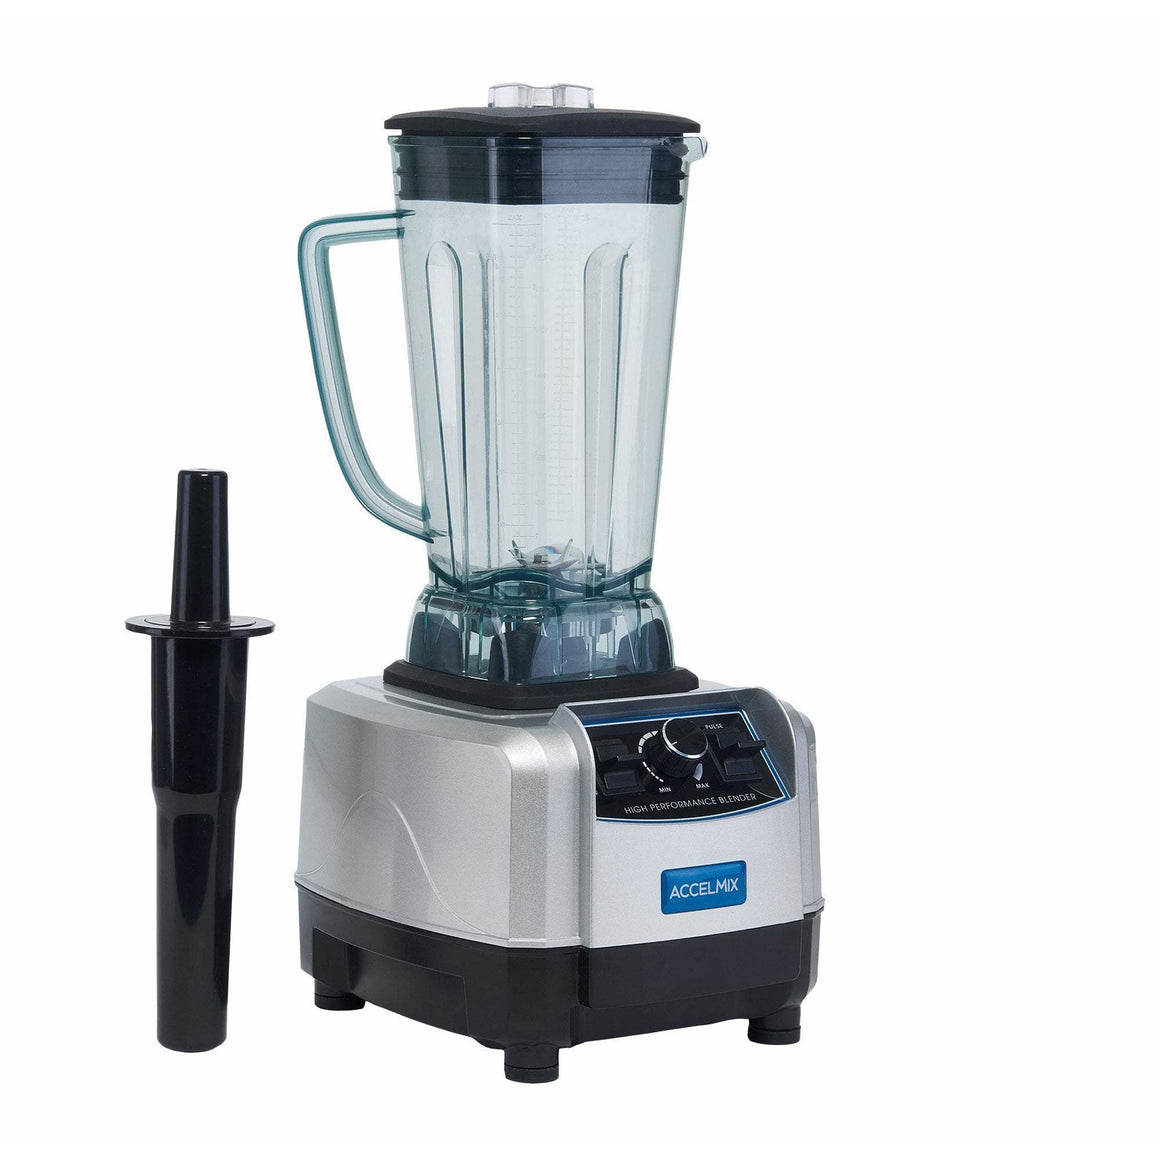 Winco - XLB-1000 - ACCELMIX Electric Blender w/Paddle Controls, 1450W - Bar Supplies